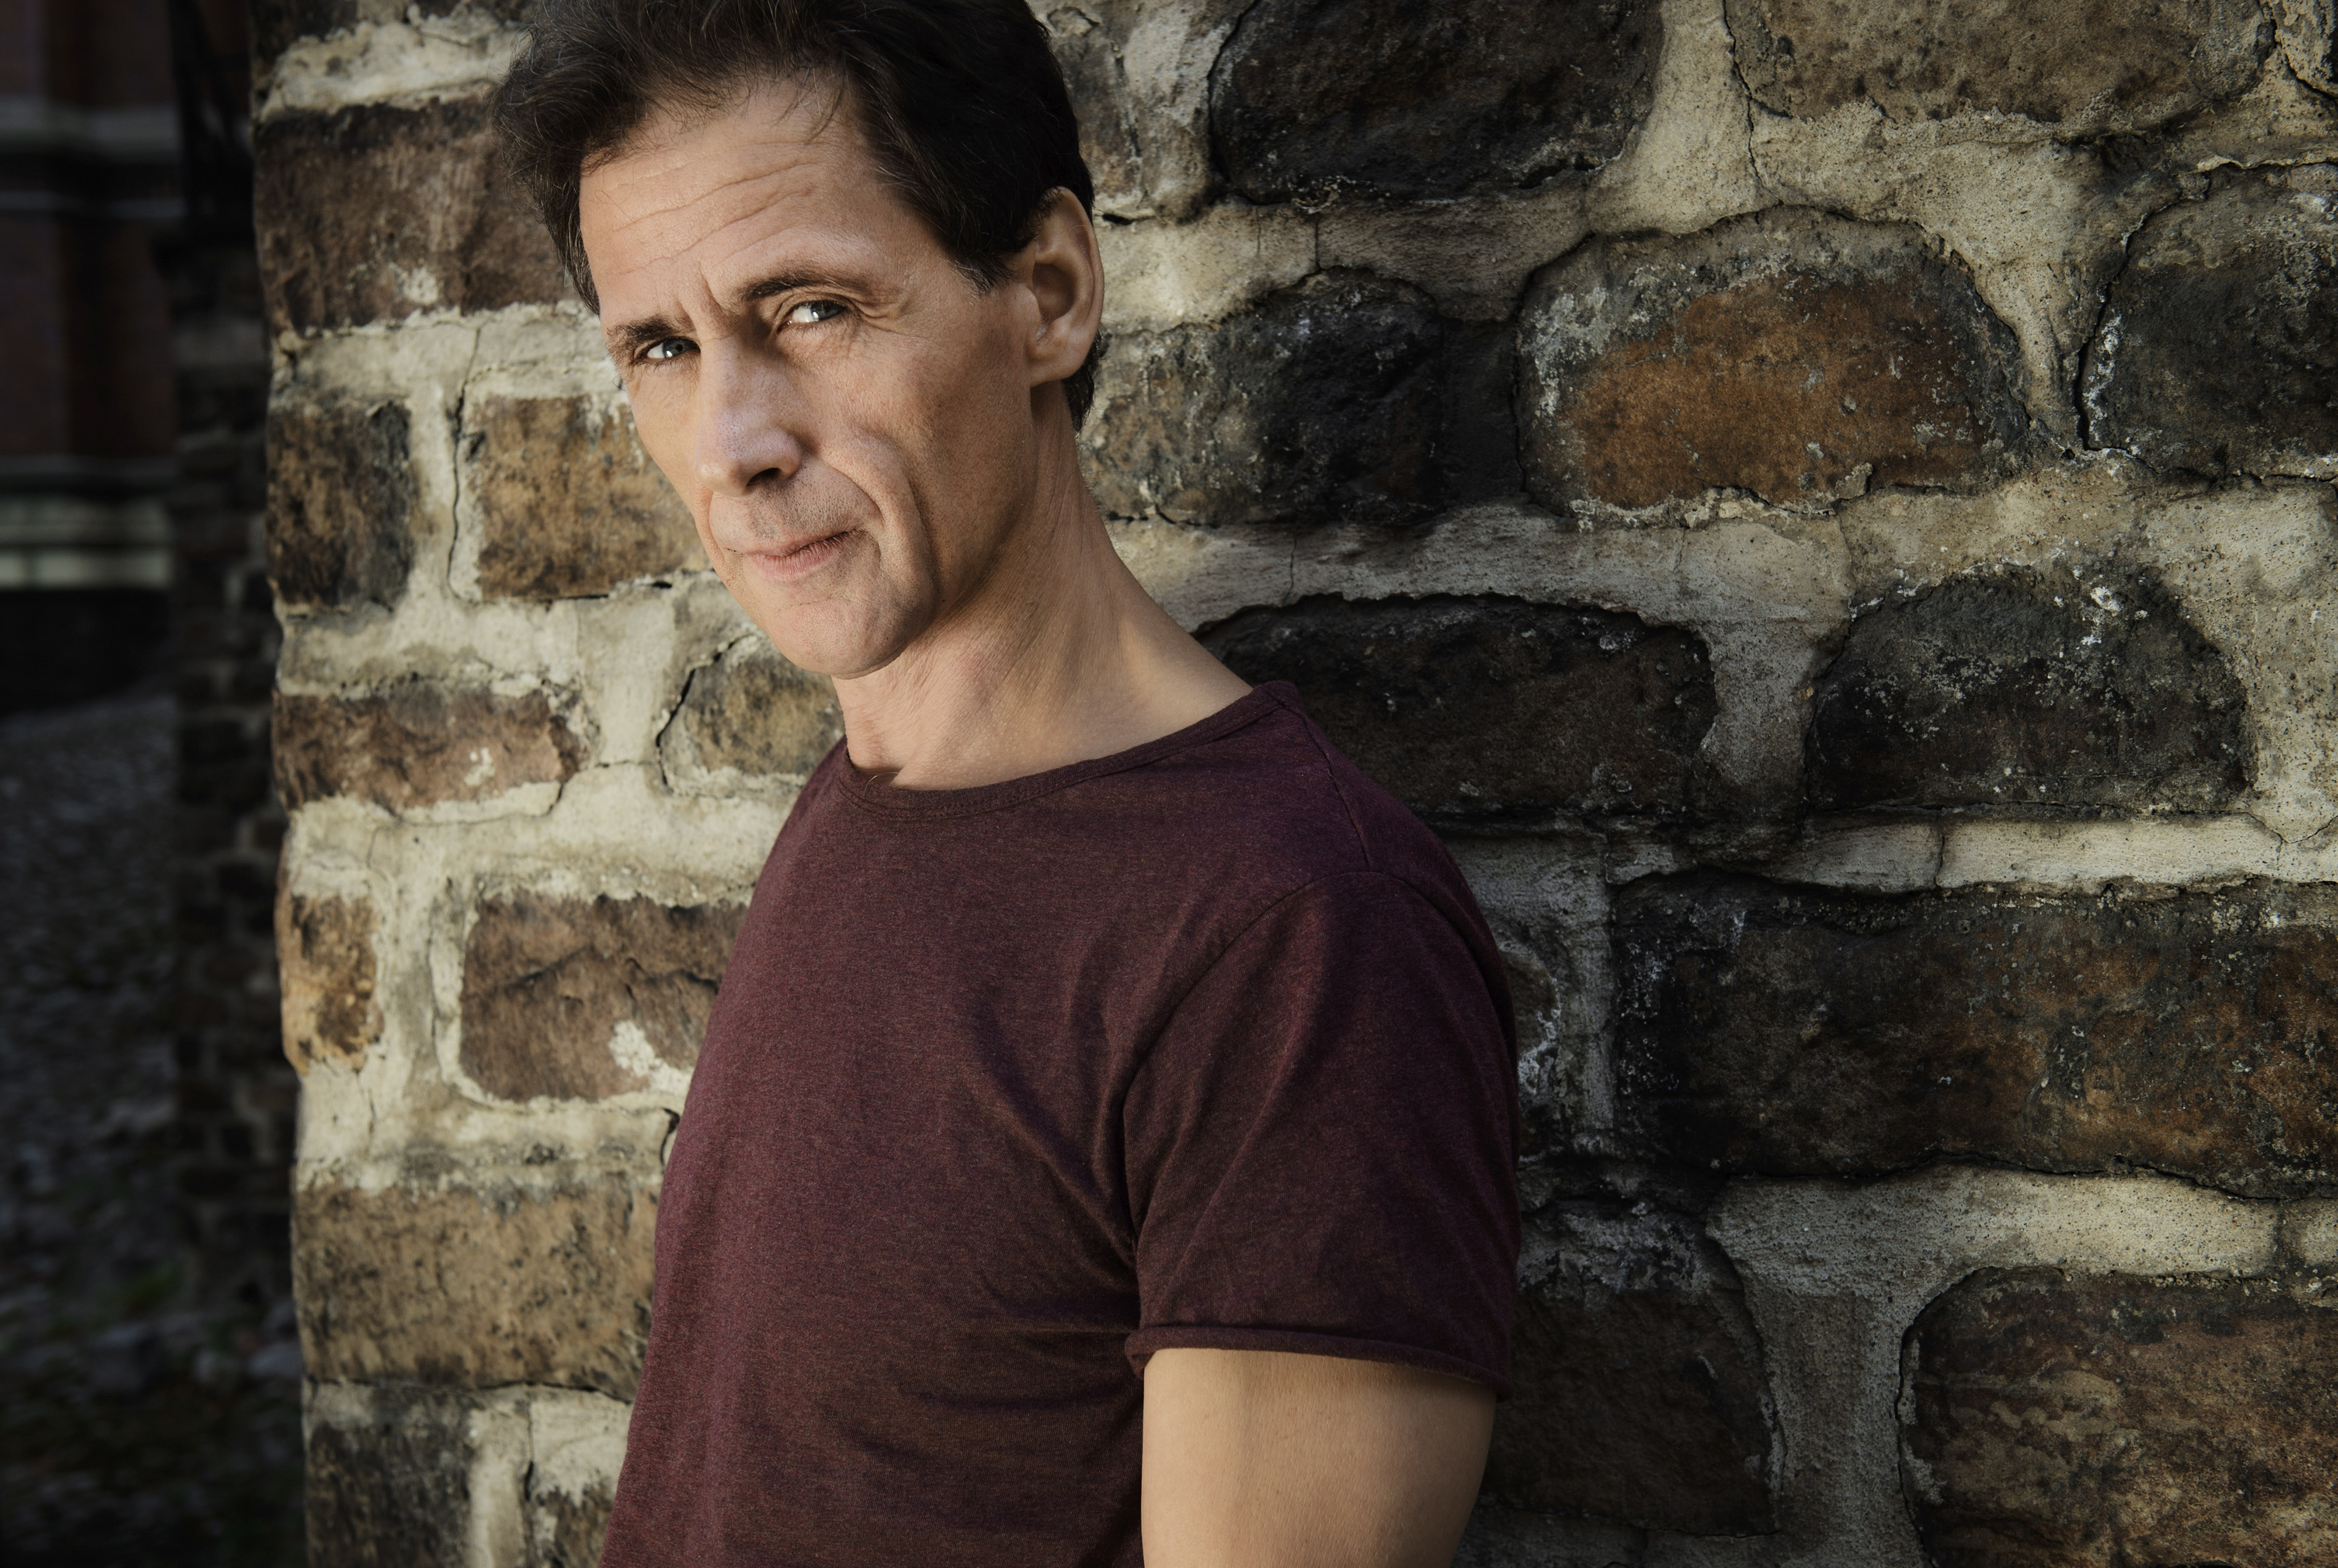 """David Lagercrantz continues Stieg Larsson series with """"The Girl in the Spider's Web."""""""